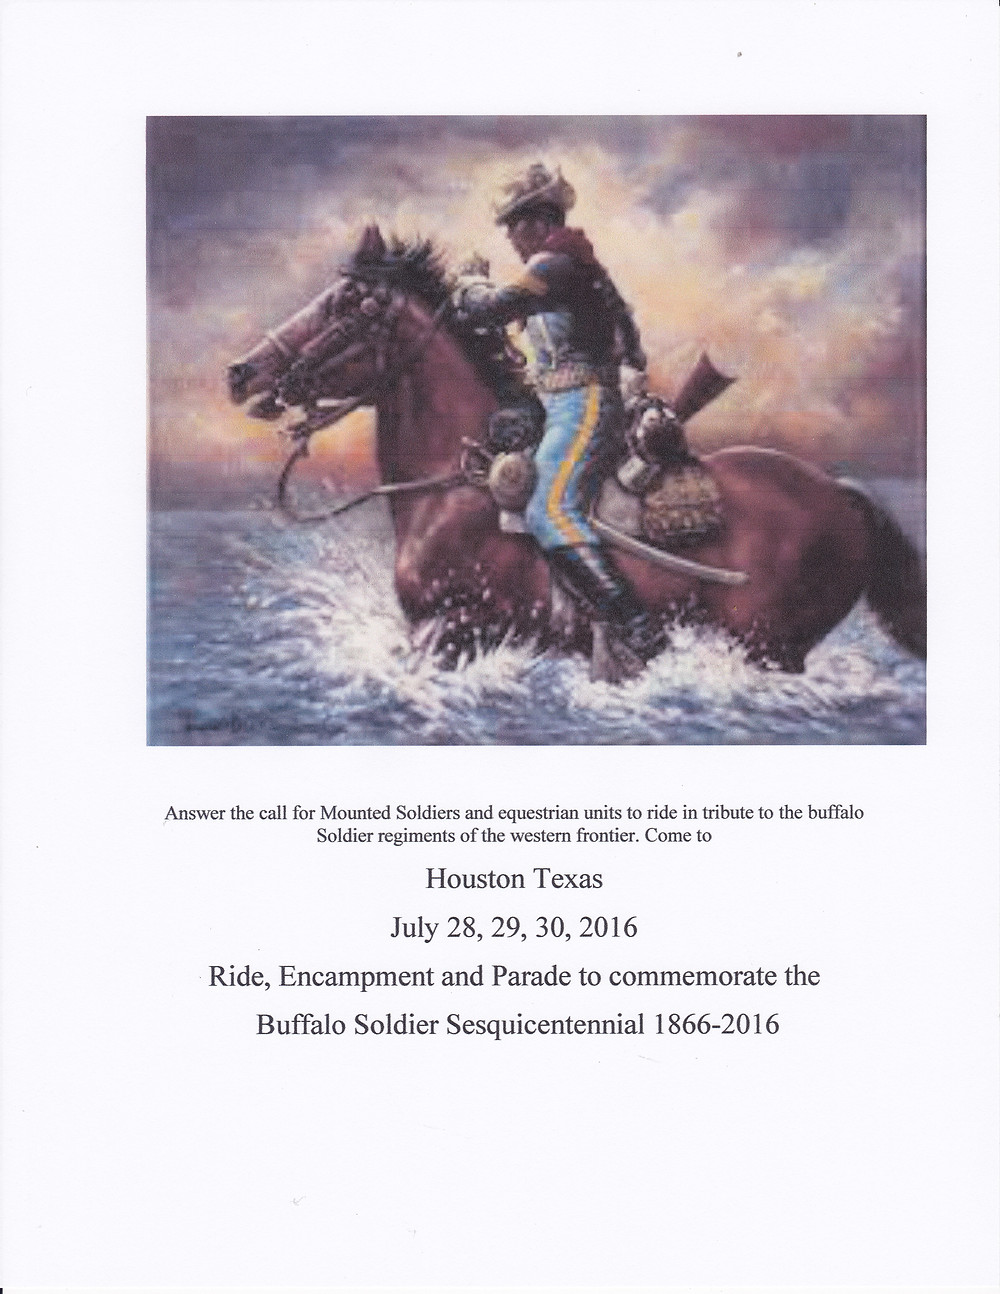 "Answer the Call for Mounted Soldiers and Equestrians units to ride in tribute to the Buffalo Soldiers ""Regiments of the Western Frontier,"" to commemorate the Buffalo Soldier Sesquicentennial of 1866-2016.  Houston Texas, July 28-30, 2016. Ride, Encampment, and Parade."